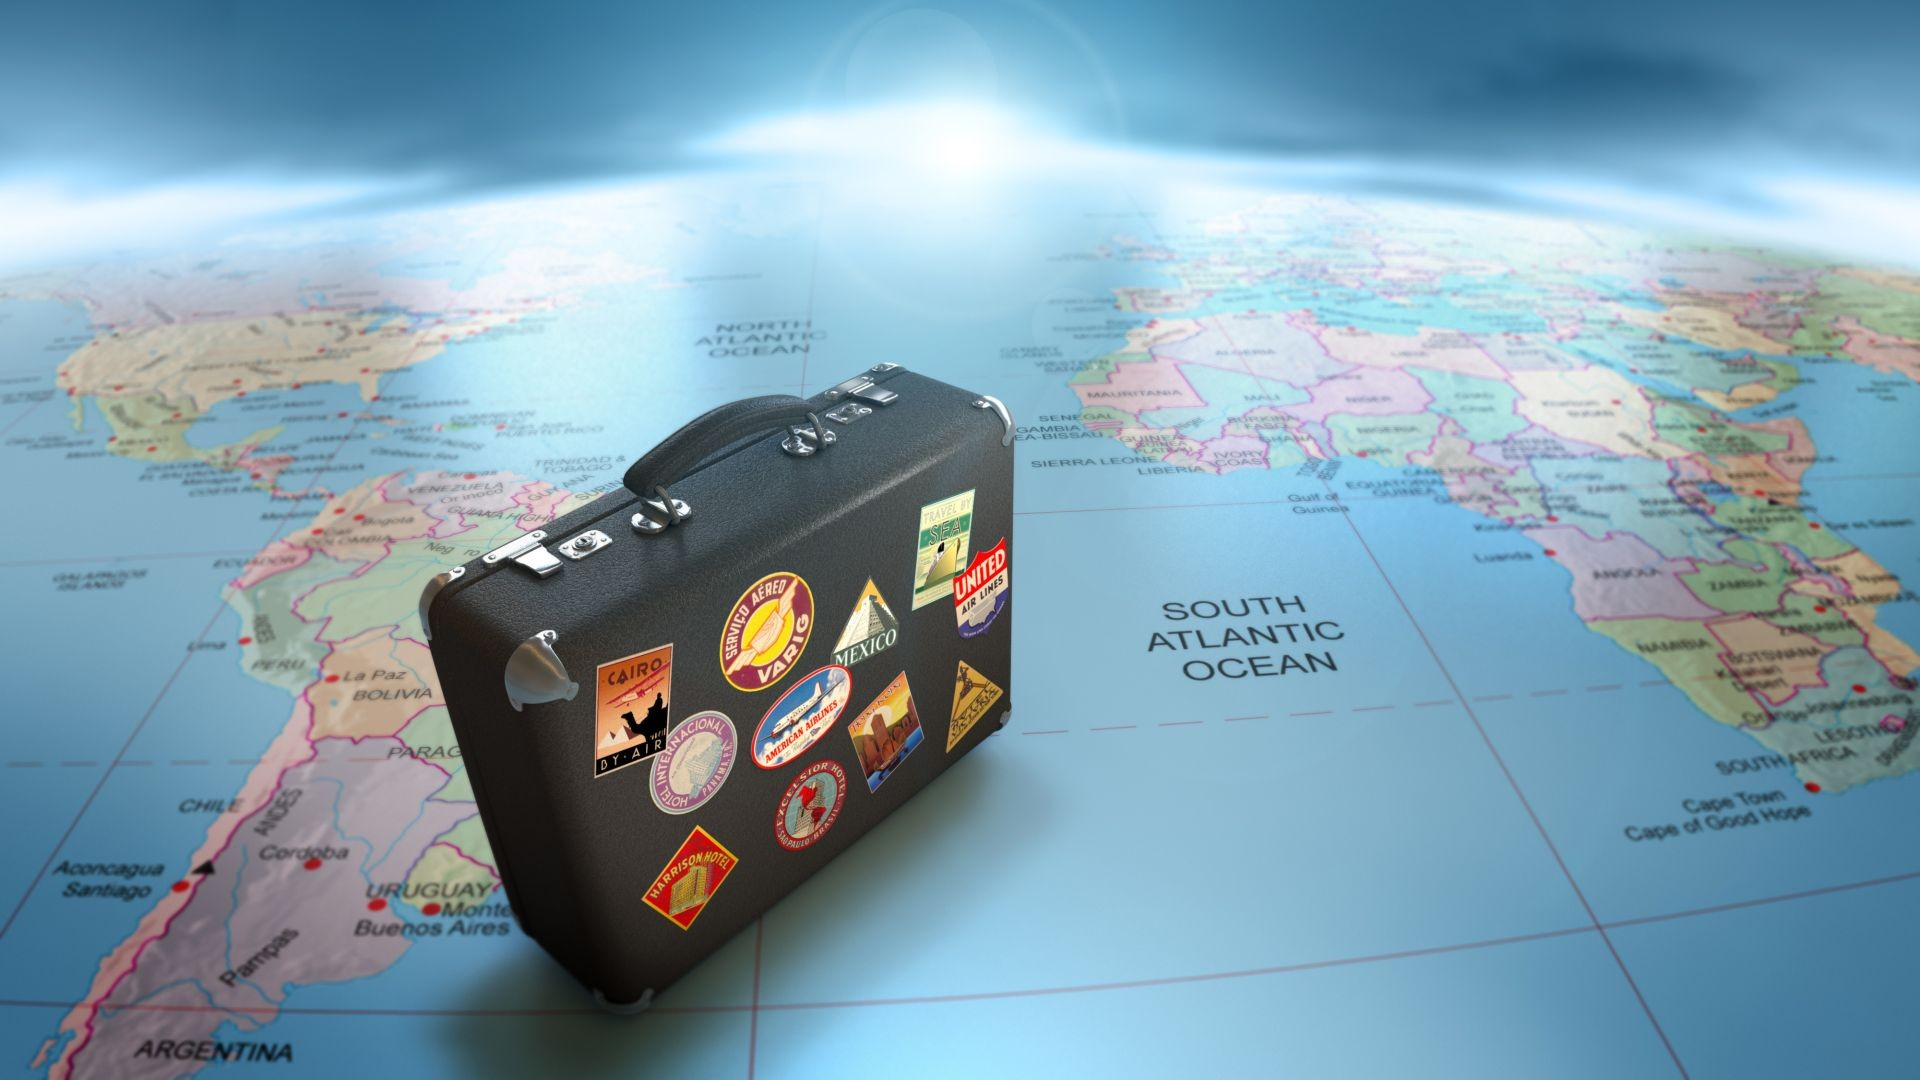 Practical Tips for Saving Your Travel Money